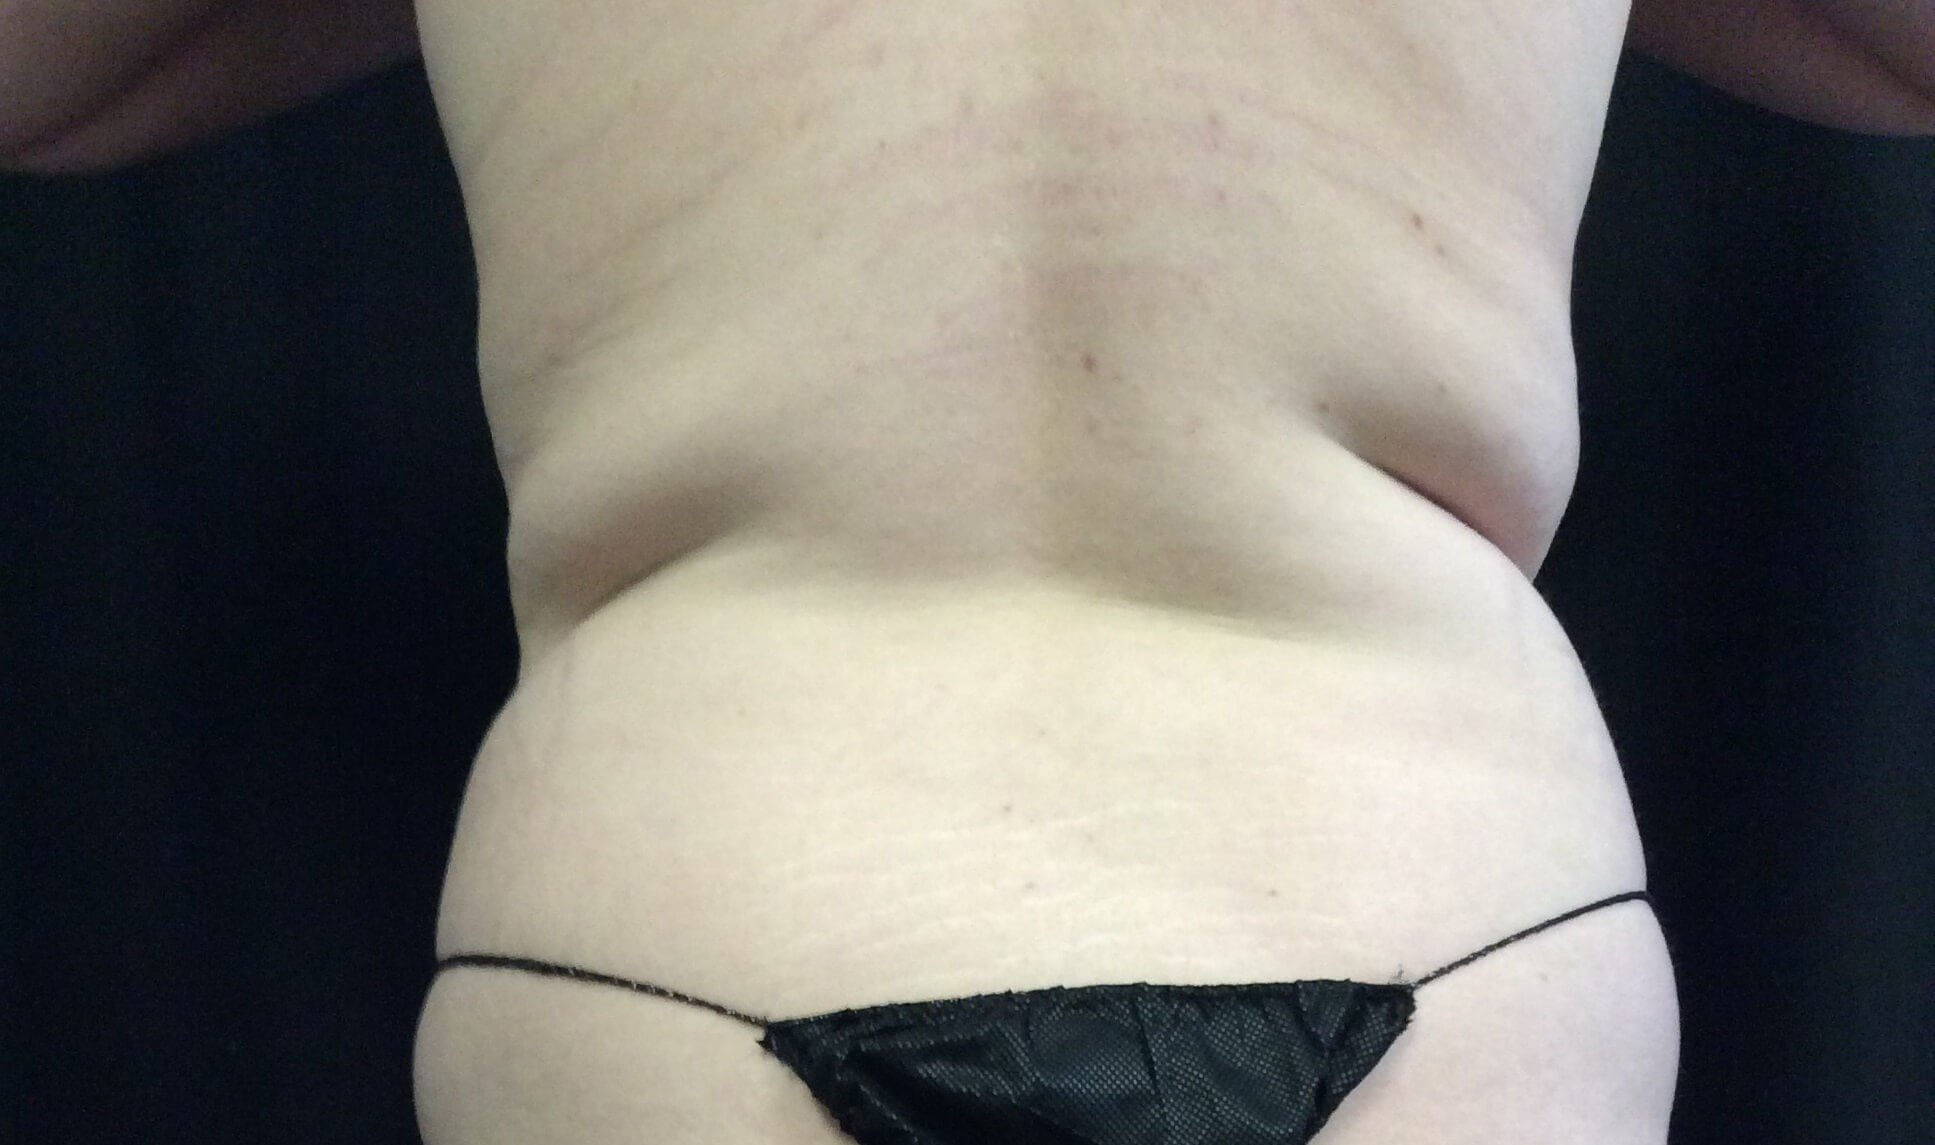 COOLSCULPTING RESULTS Before